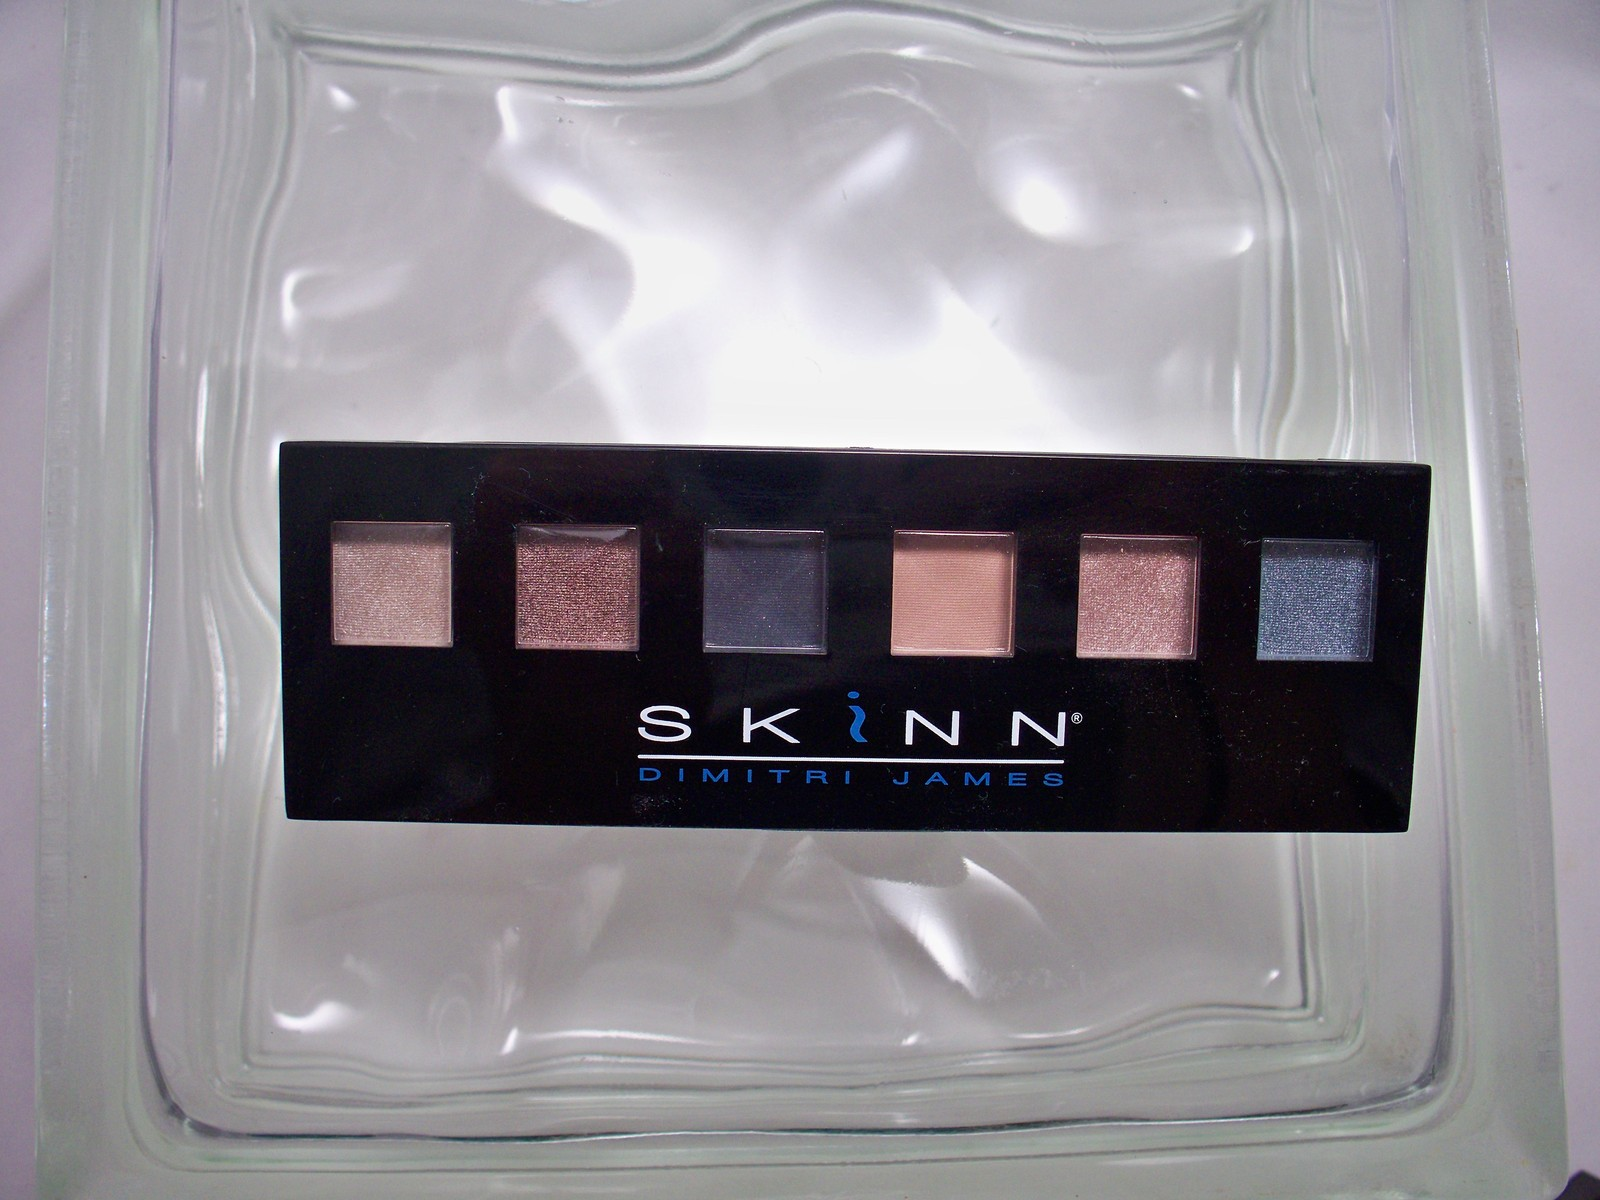 Skinn by Dimitri James Patina Shadows use wet or dry w/ grapeseed extract - $9.75